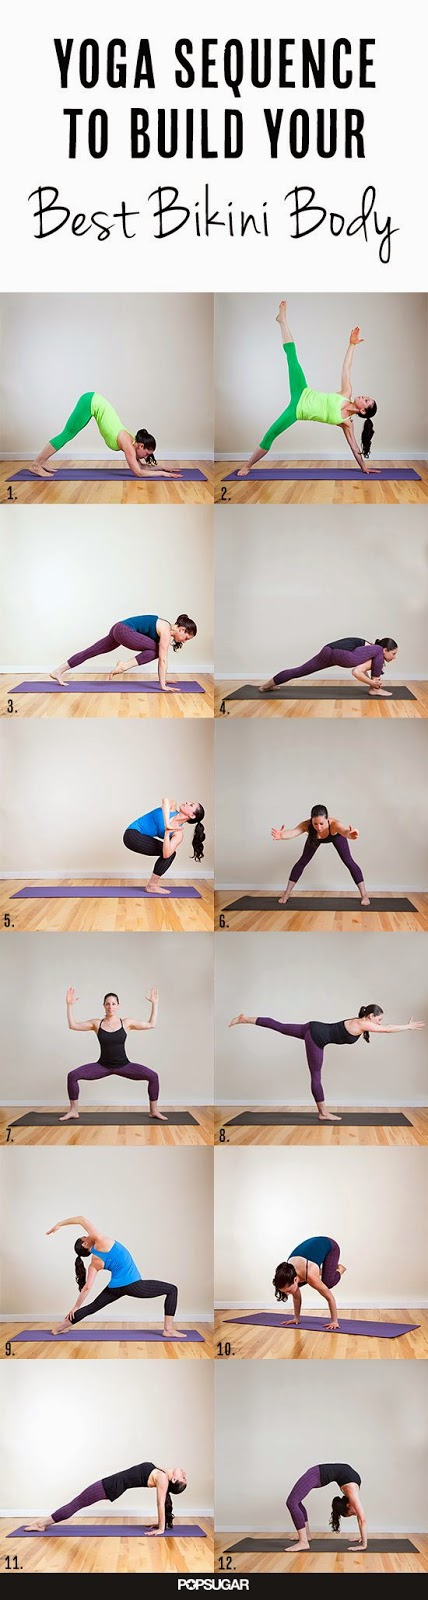 Source: www.PopSugar.com | Yoga Sequence to Build Your Best Bikini Body